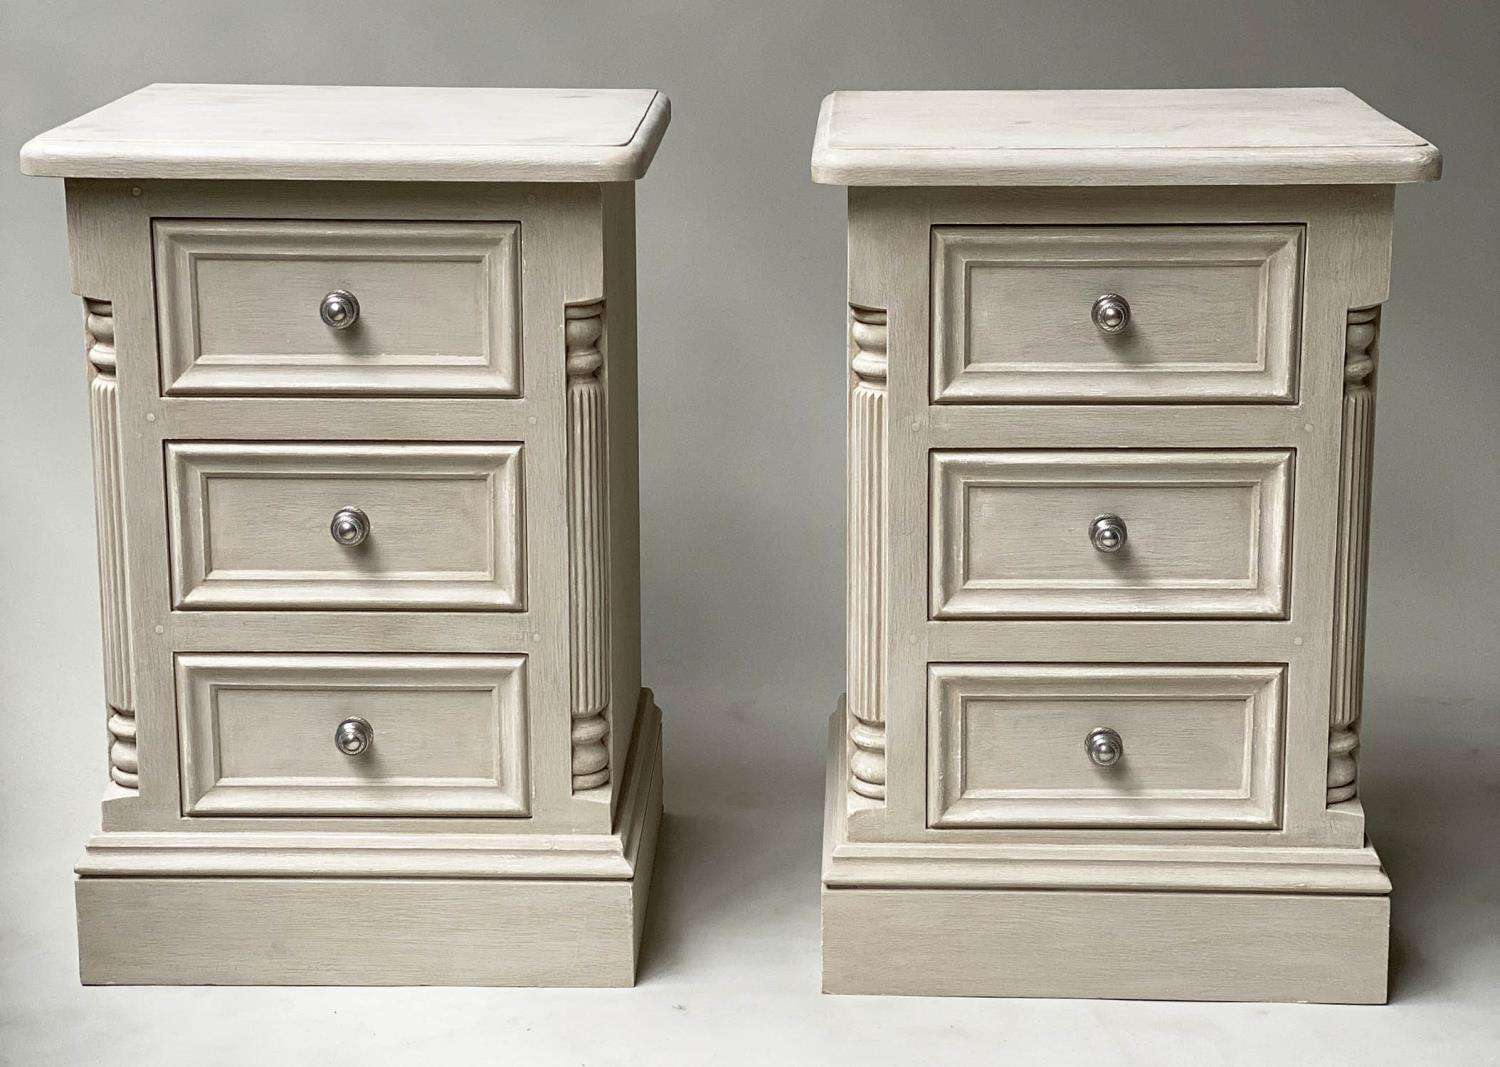 BEDSIDE CHESTS, a pair, French style grey painted, each with three drawers, 49cm x 47cm x 76cm H. (